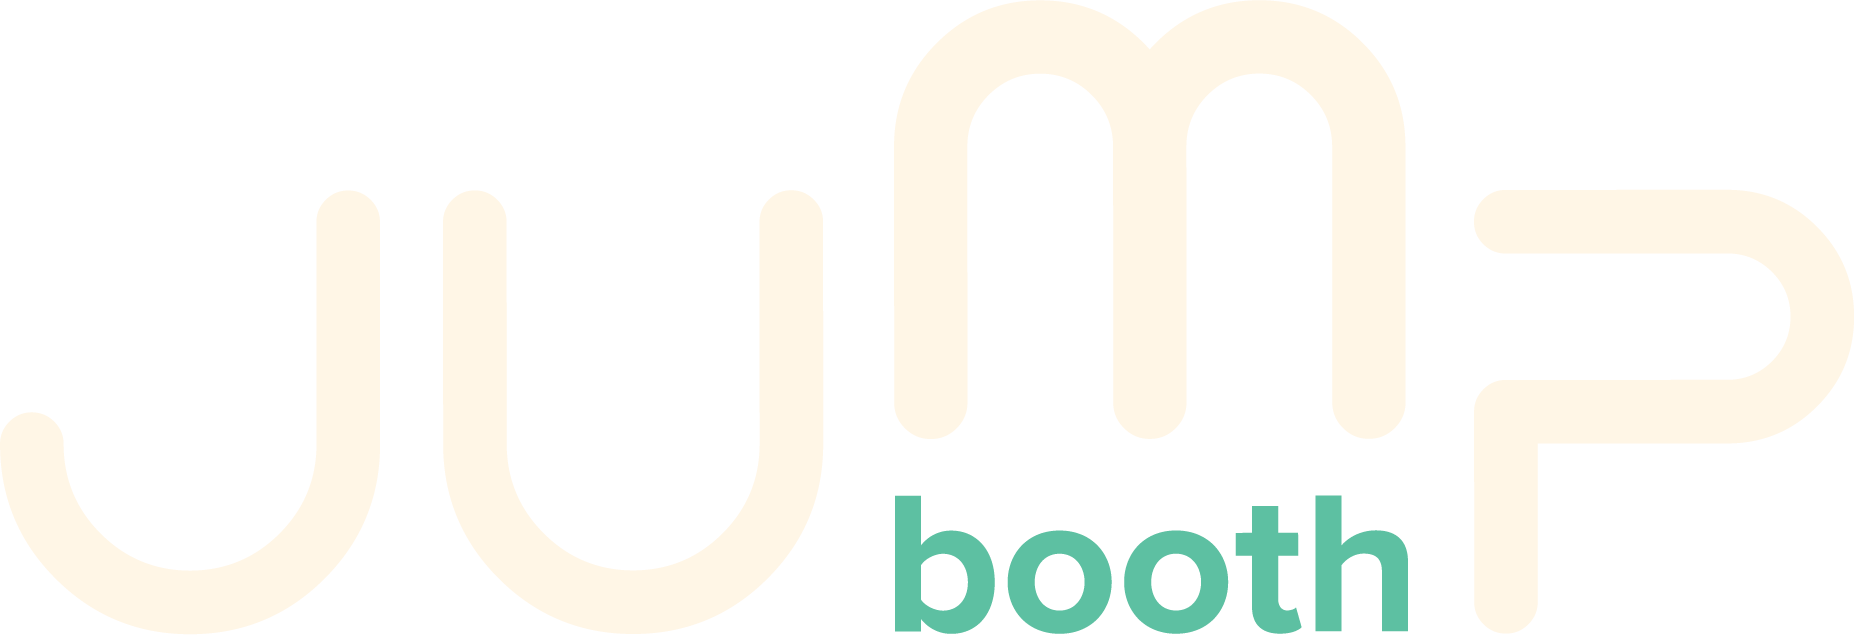 Jumpbooth_logo_offwhite.png